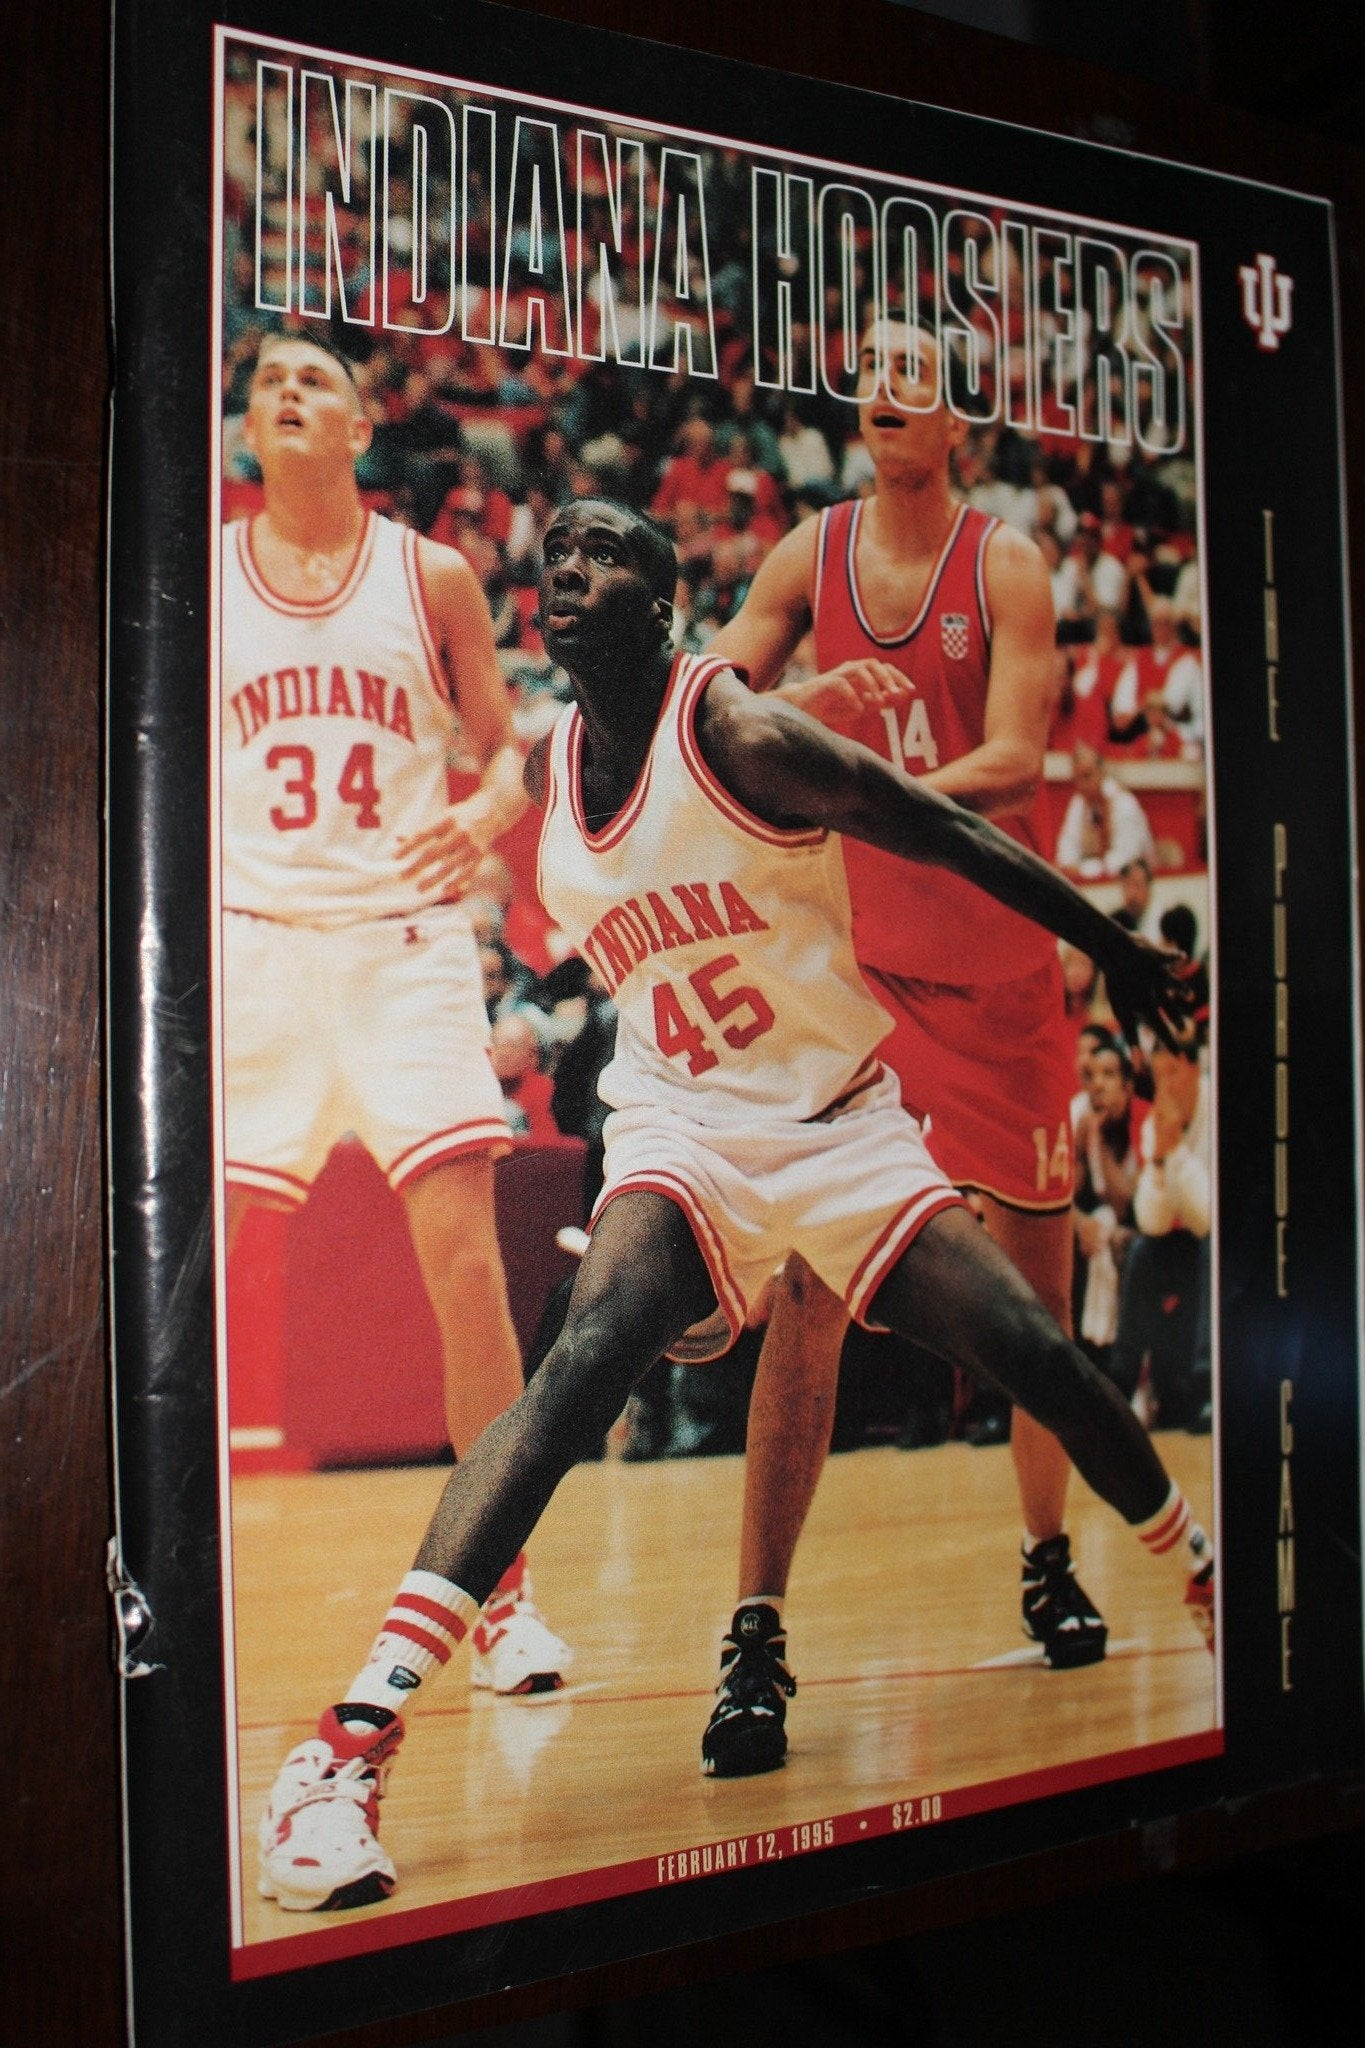 1995 Purdue vs Indiana Basketball Program - Vintage Indy Sports